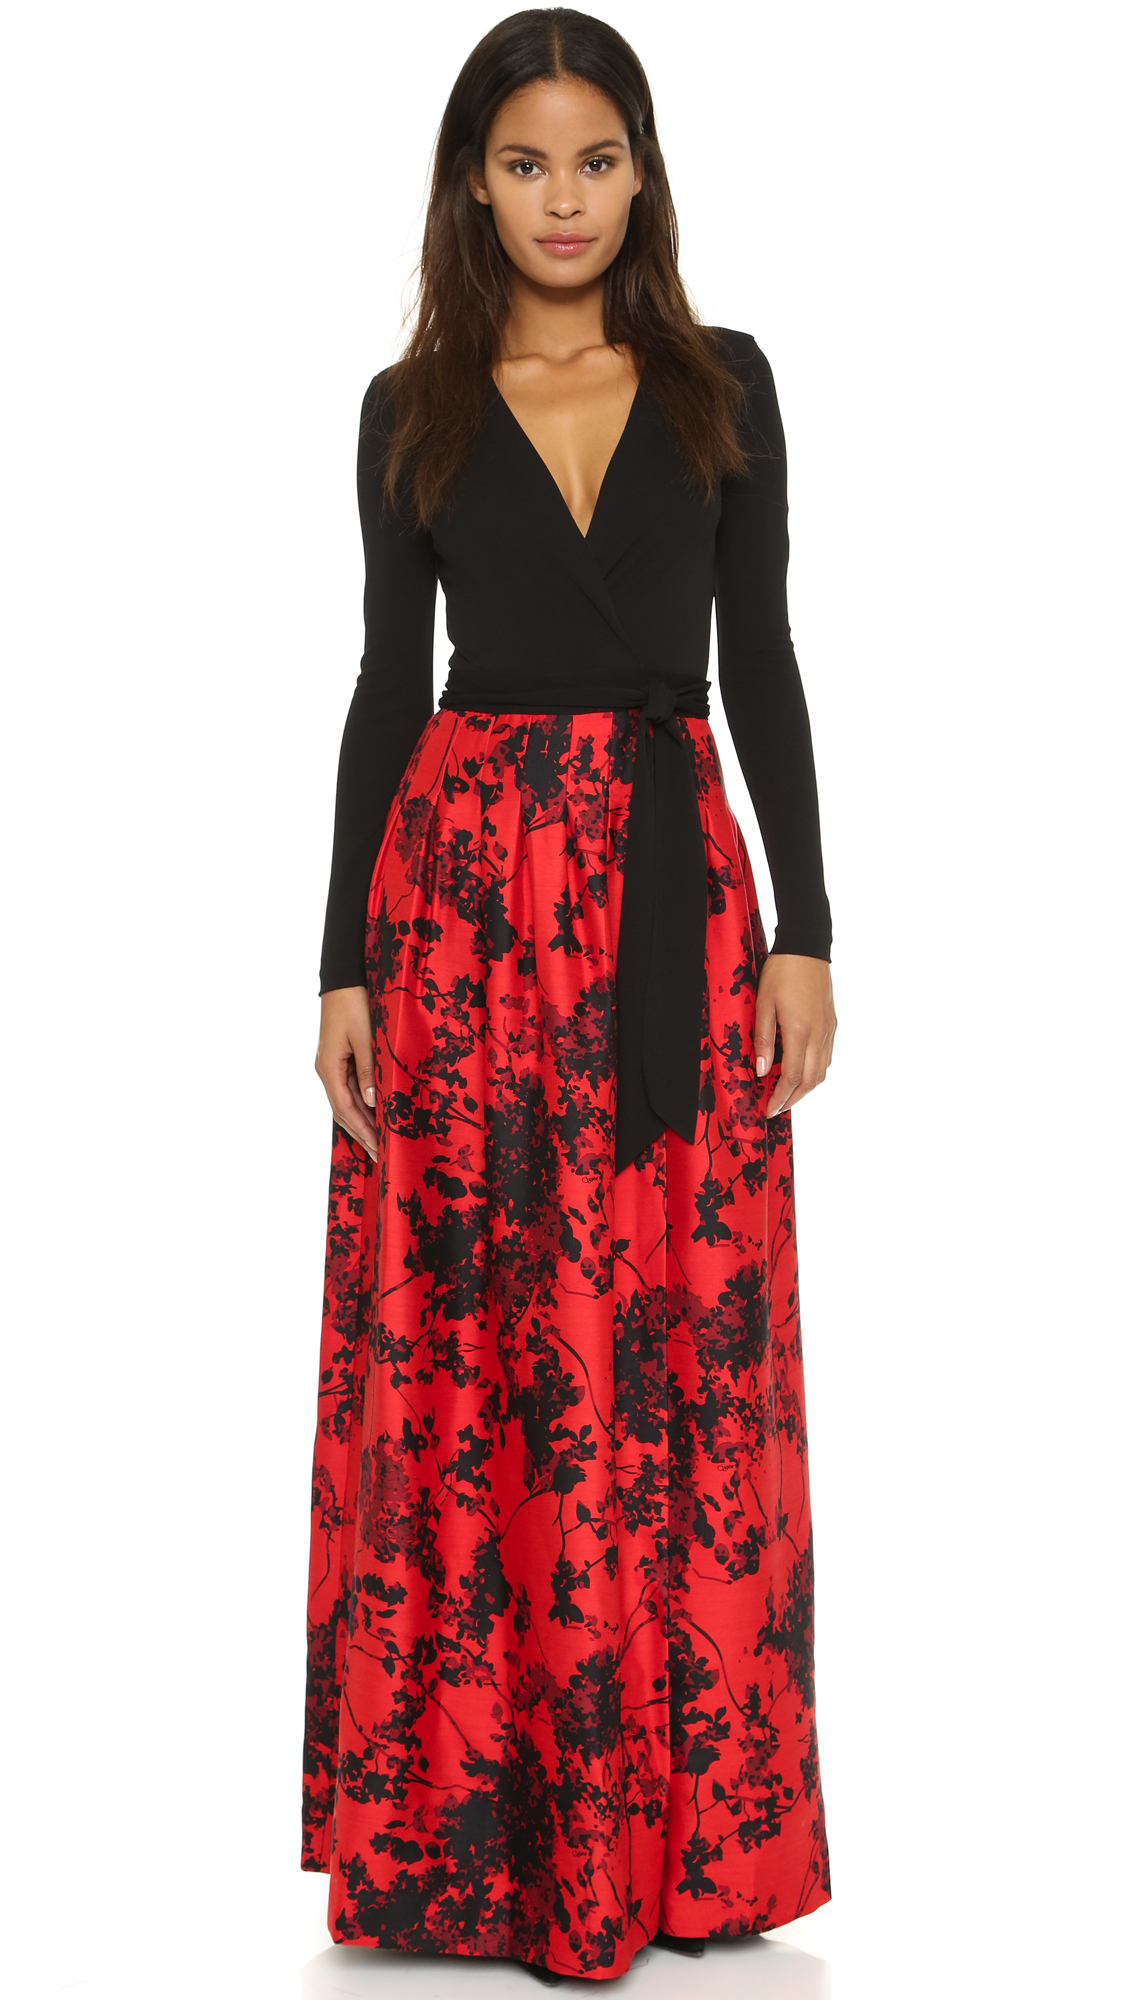 Lyst Diane Von Furstenberg Kailey Dress Black Floral